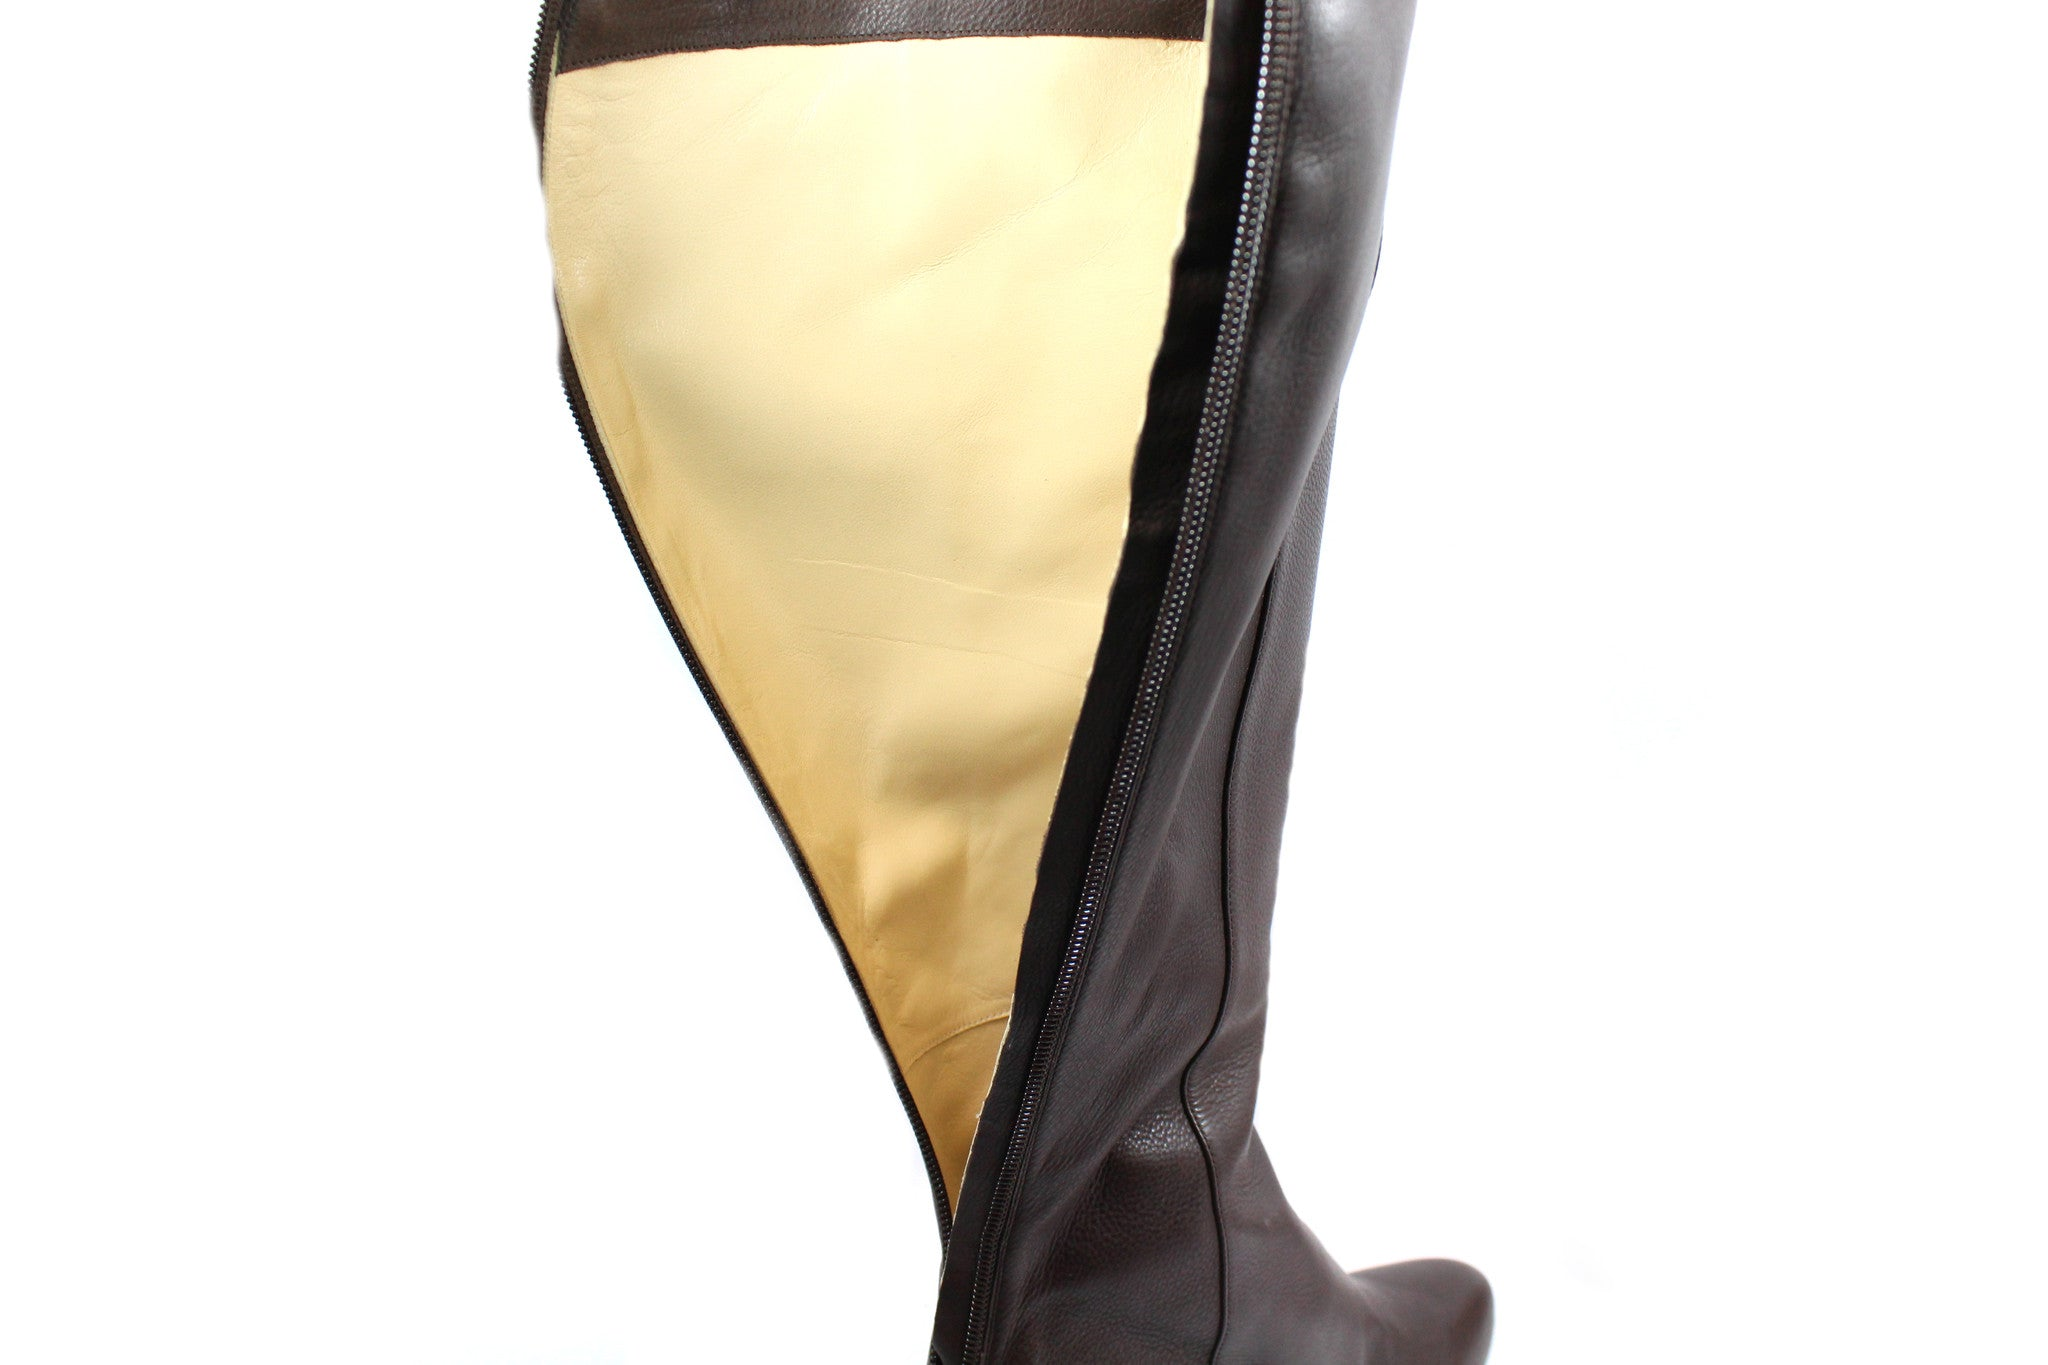 443a9133f35 Jimmy Choo Brown Leather Boots (Size 37) - Encore Consignment - 7